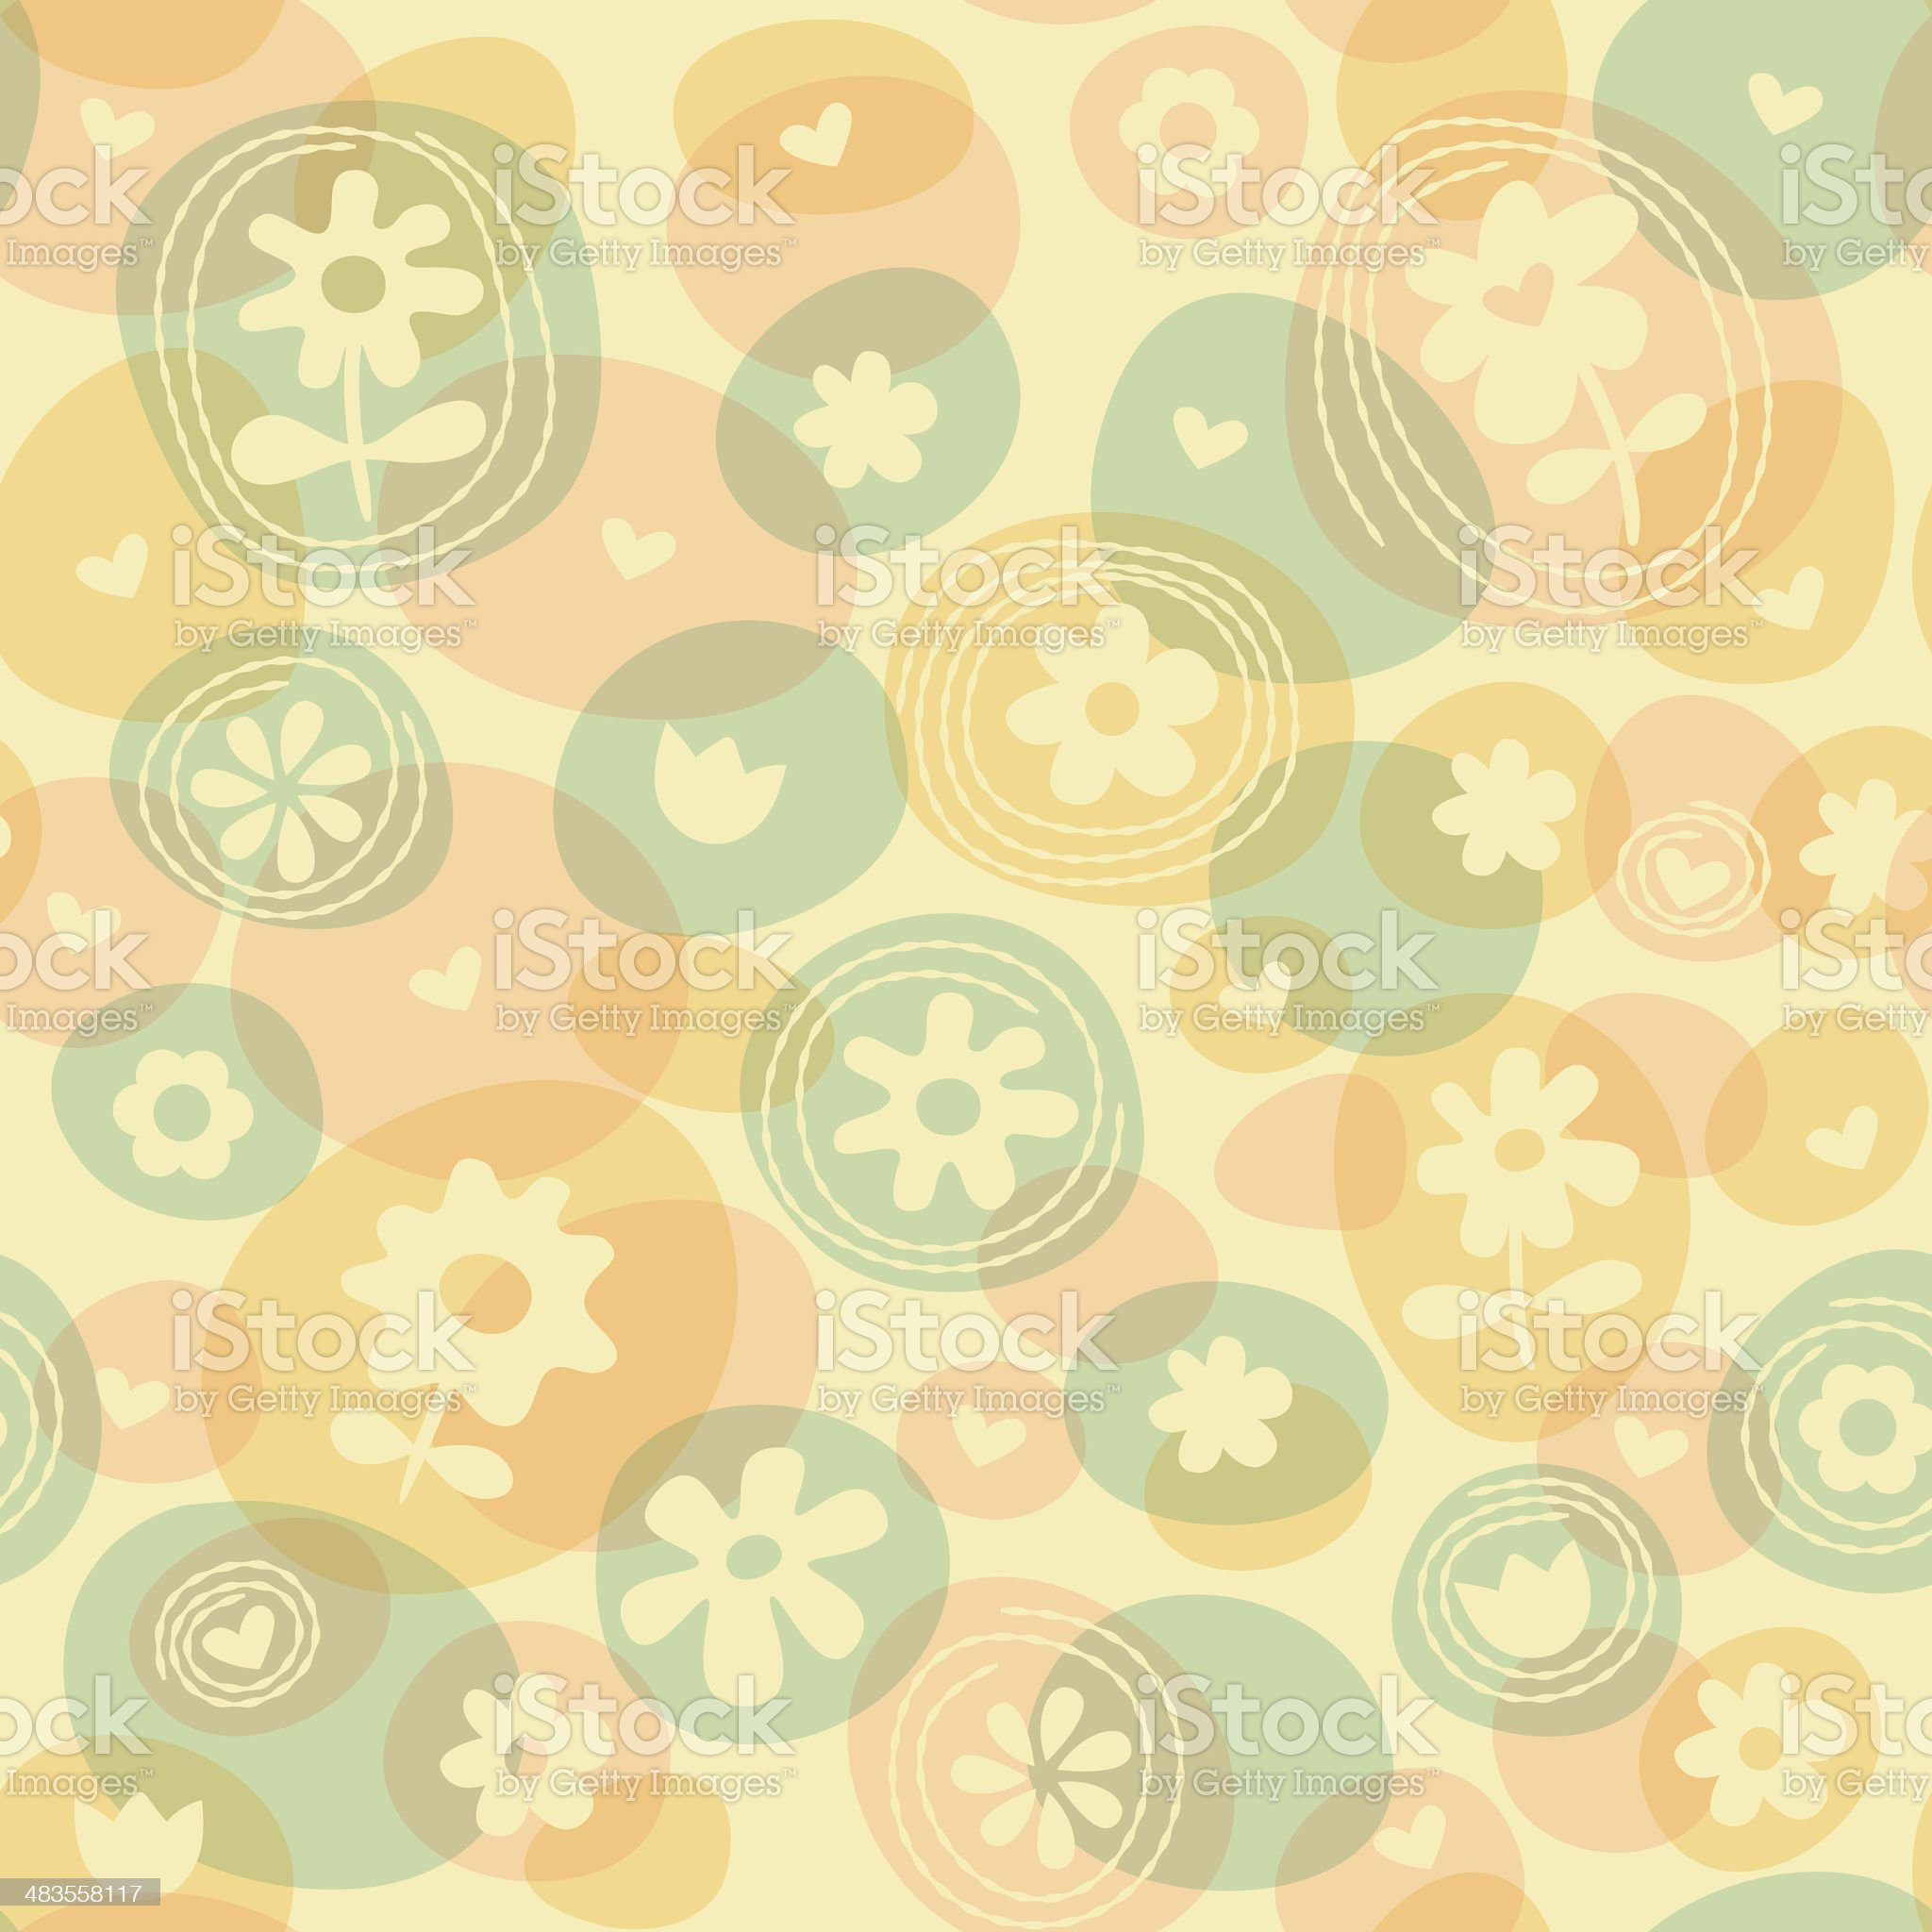 Repeat Spring Flowers Fun Stitched Pattern royalty-free stock vector art